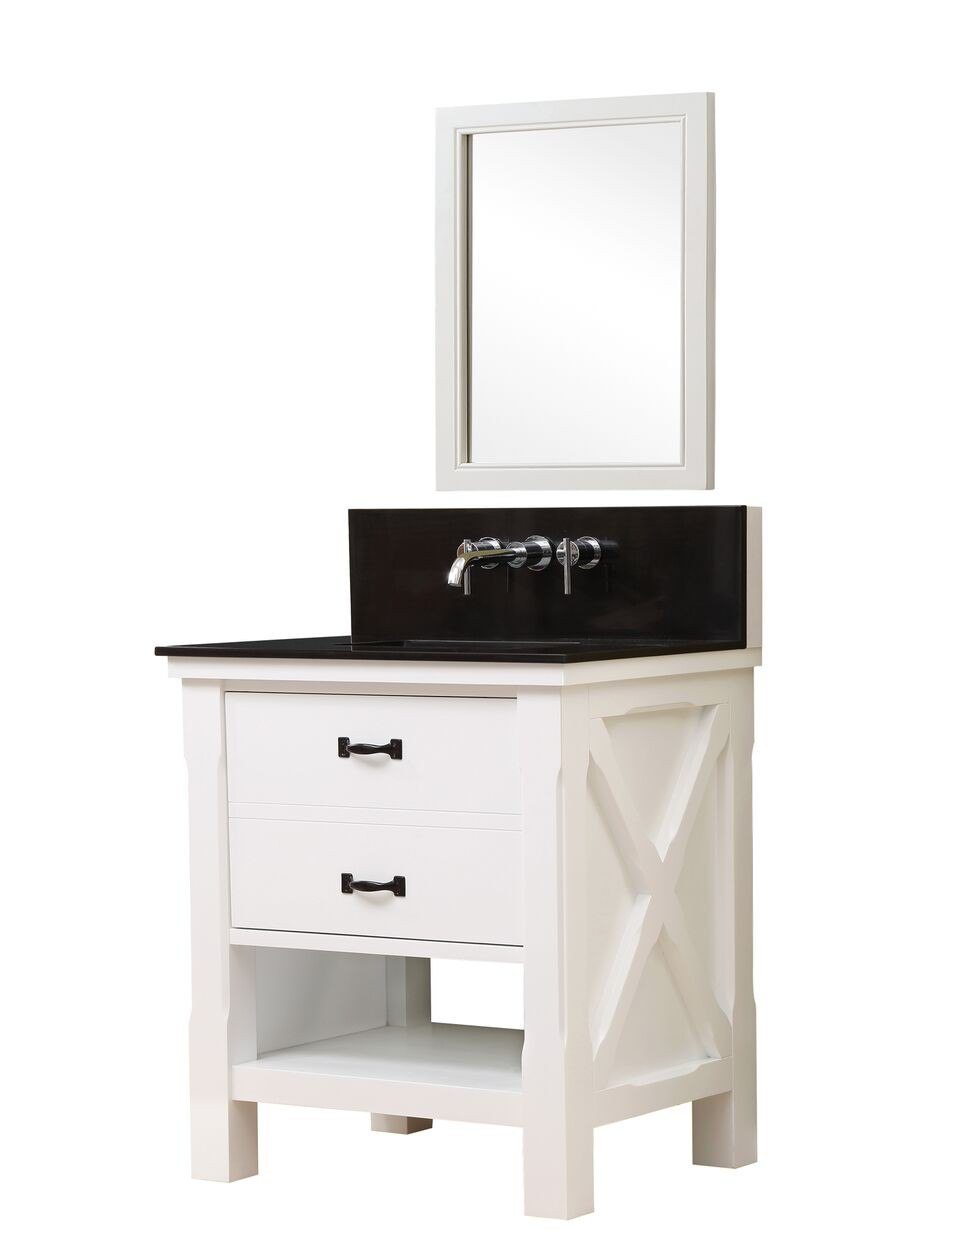 DIRECT VANITY SINK 32S1-WBK-WM-M XTRAORDINARY SPA PREMIUM 32 INCH VANITY IN WHITE WITH BLACK GRANITE TOP AND MIRROR